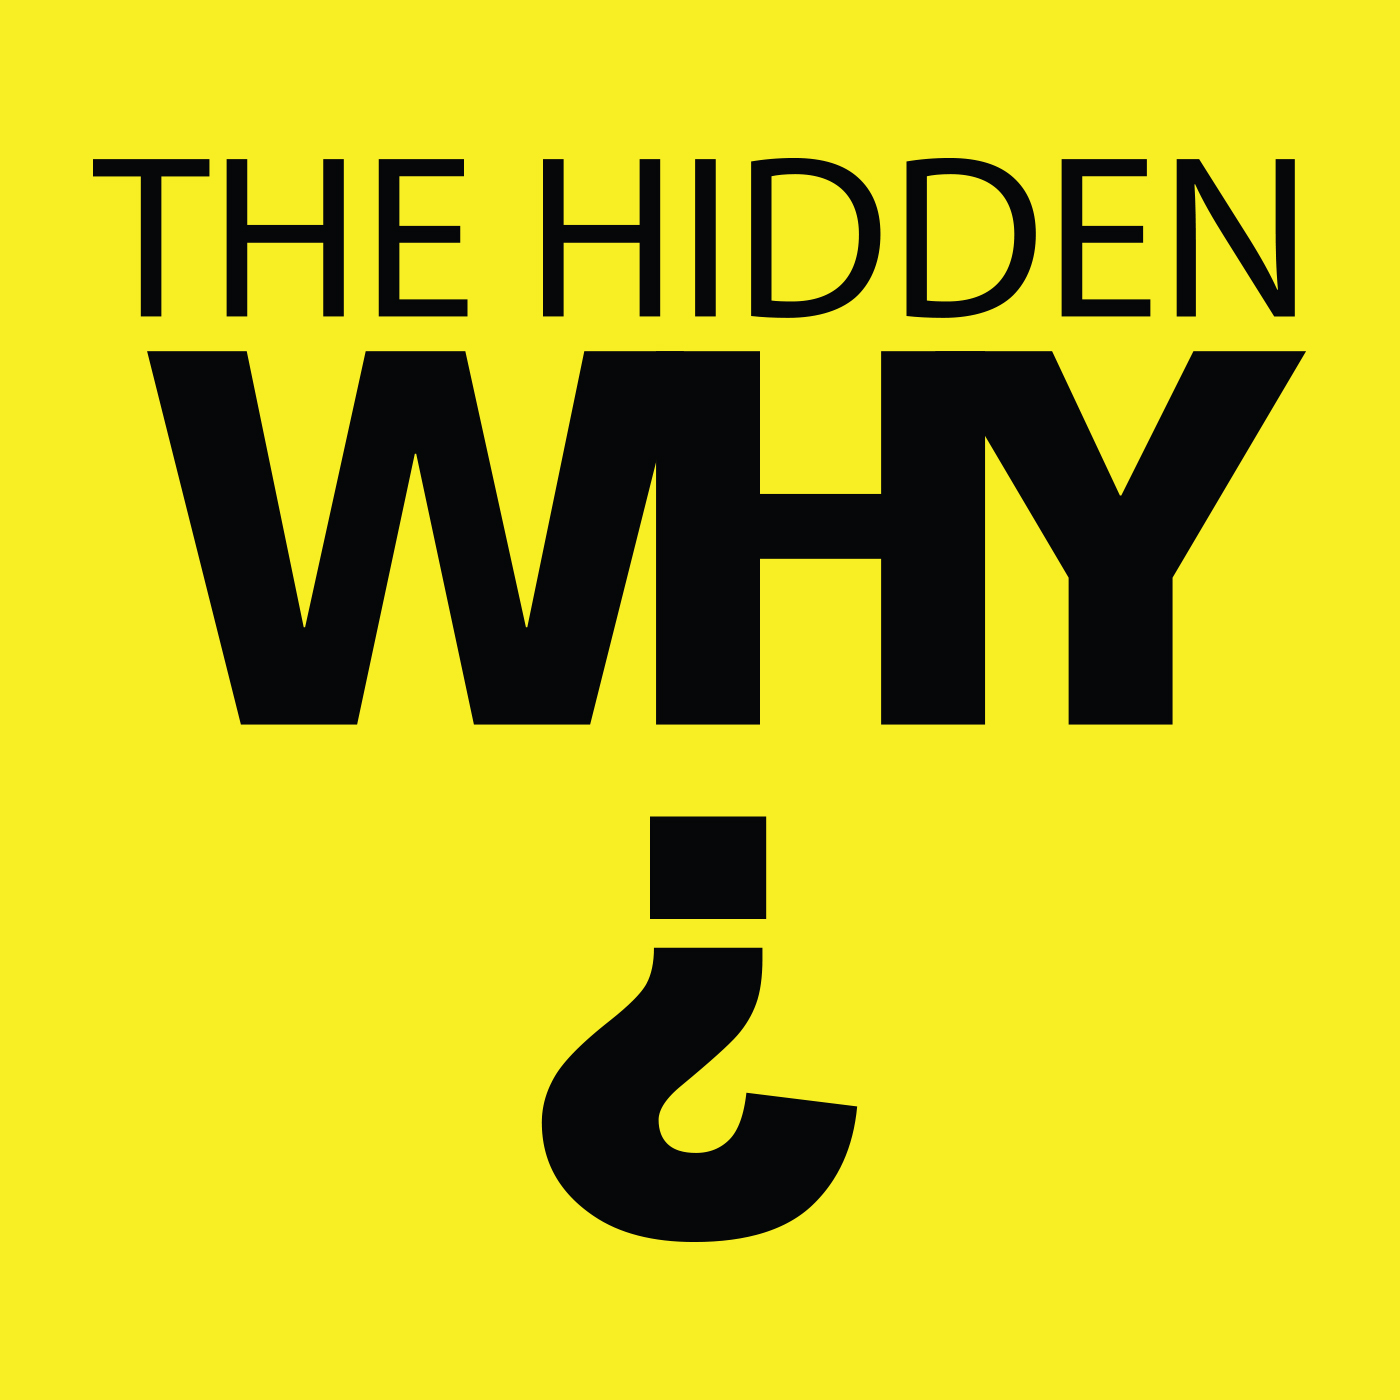 The Hidden Why Podcast: Leigh Martinuzzi on How To Discover Your Why With Greater Passion & Purpose